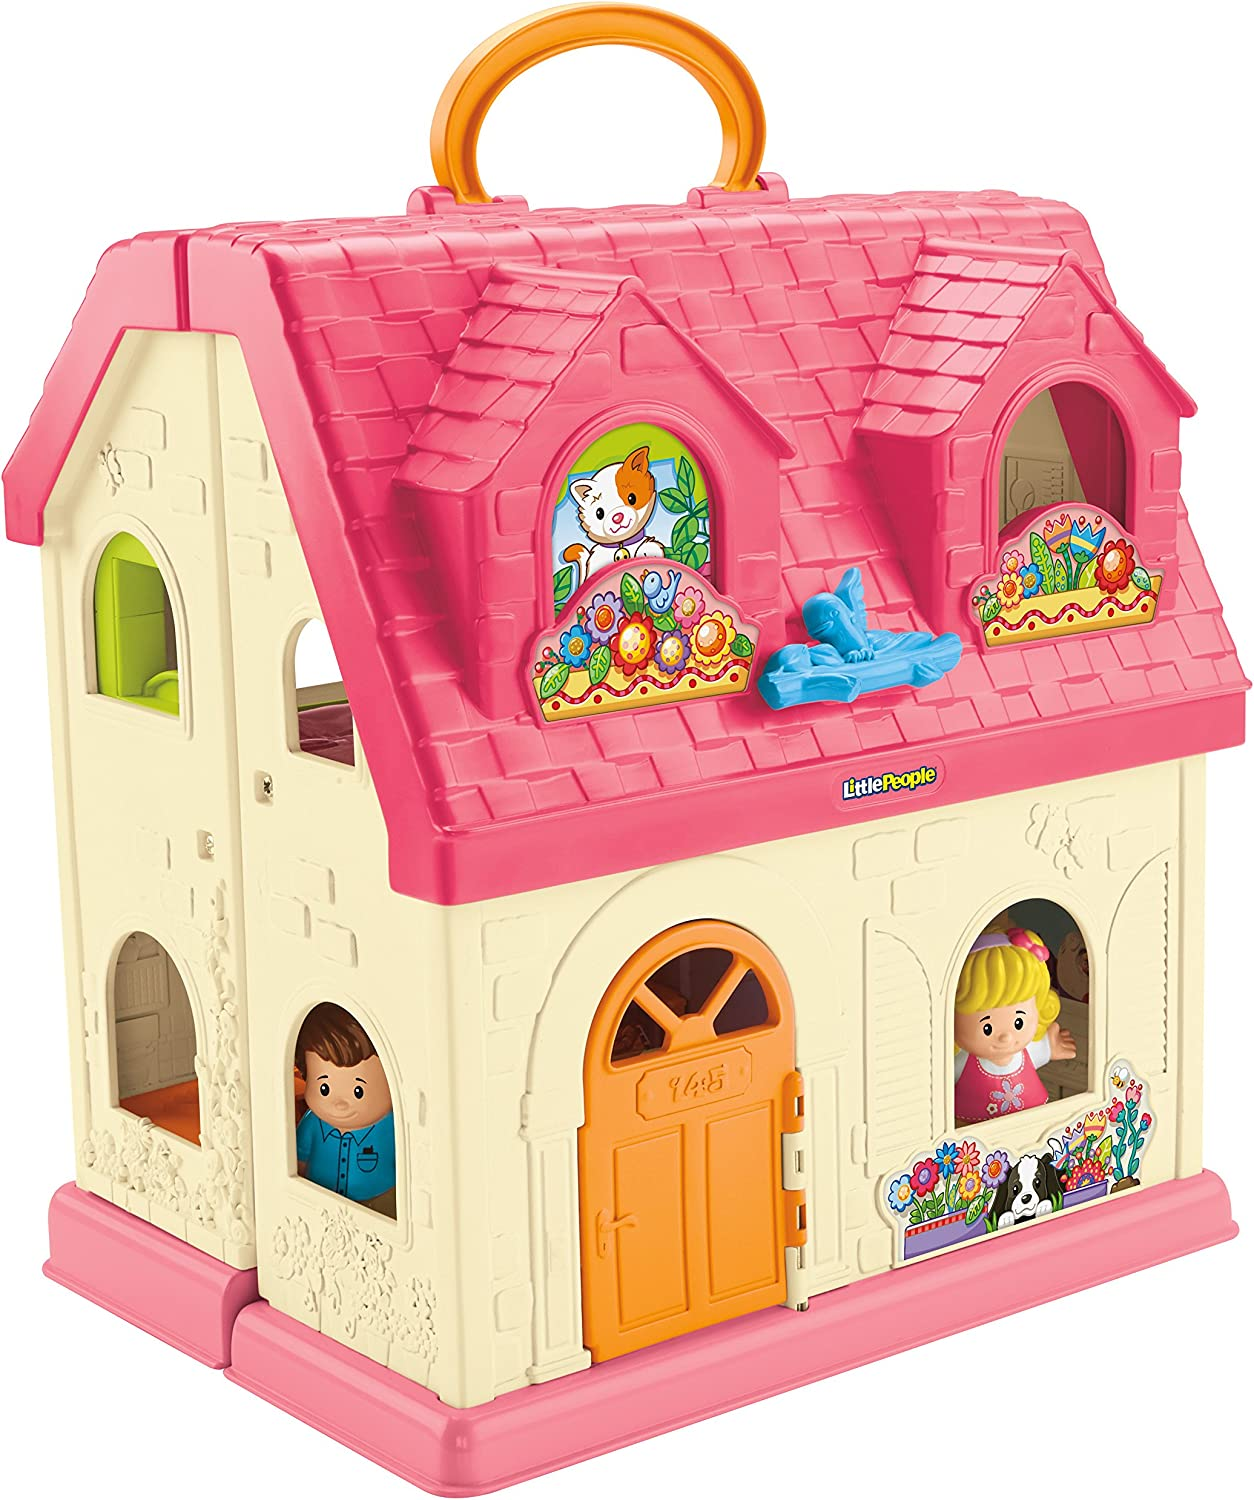 FisherPrice Little People Surprise and Sounds Home, French